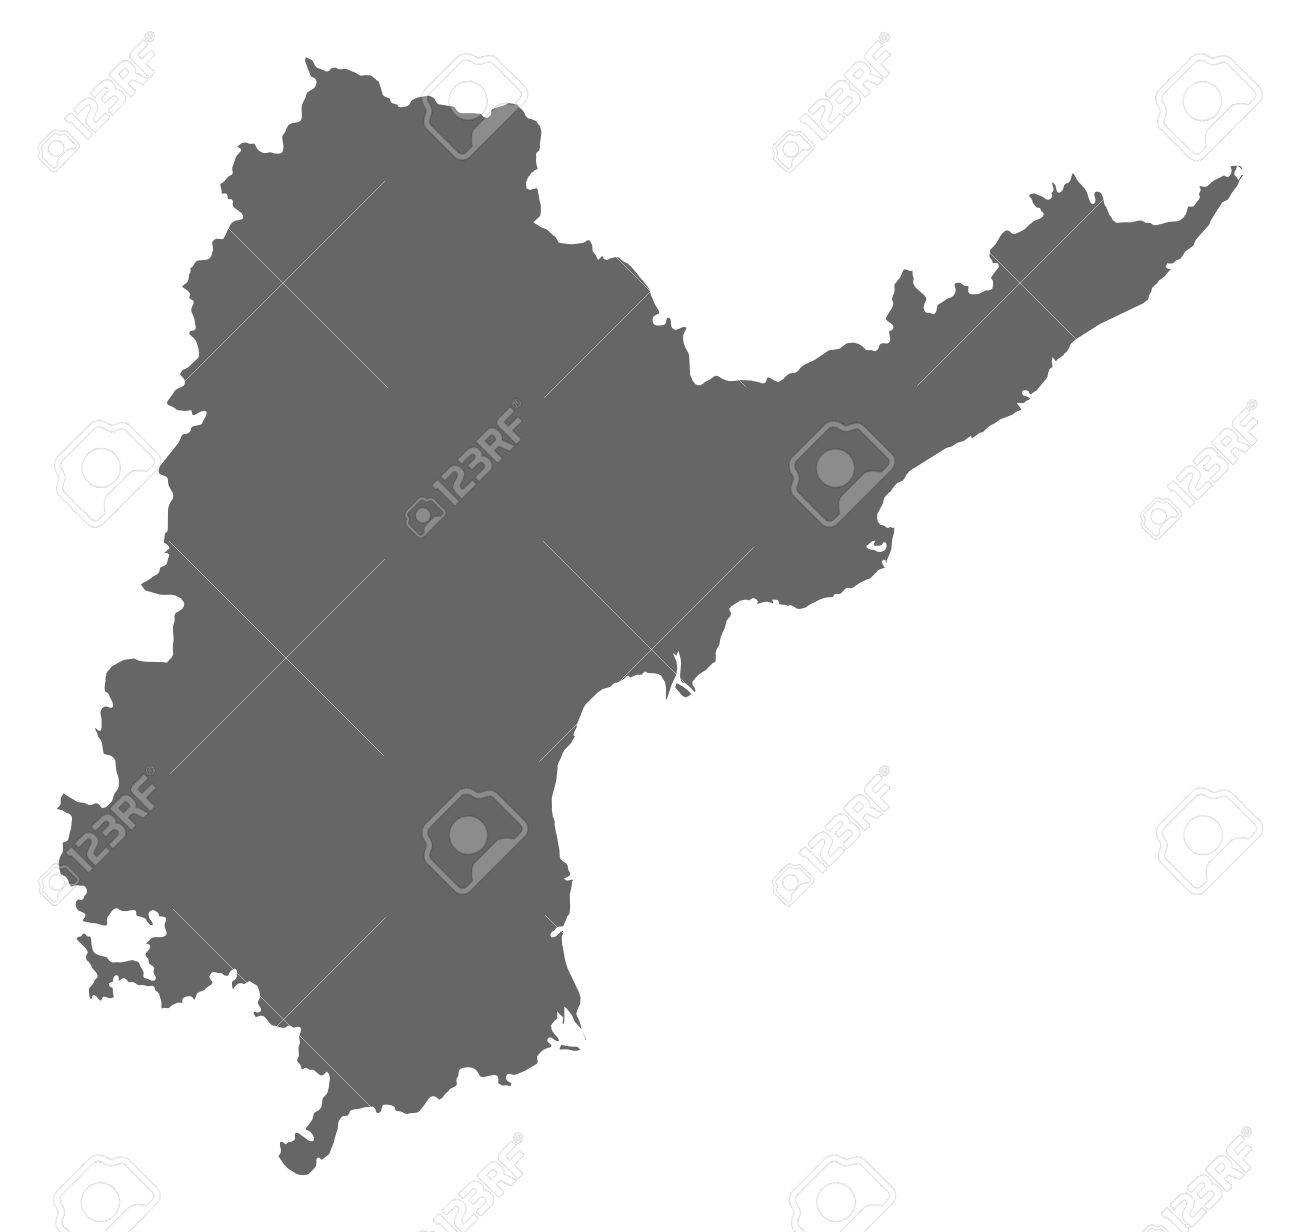 Map Of Andhra Pradesh, A Province Of India. Royalty Free Cliparts ...